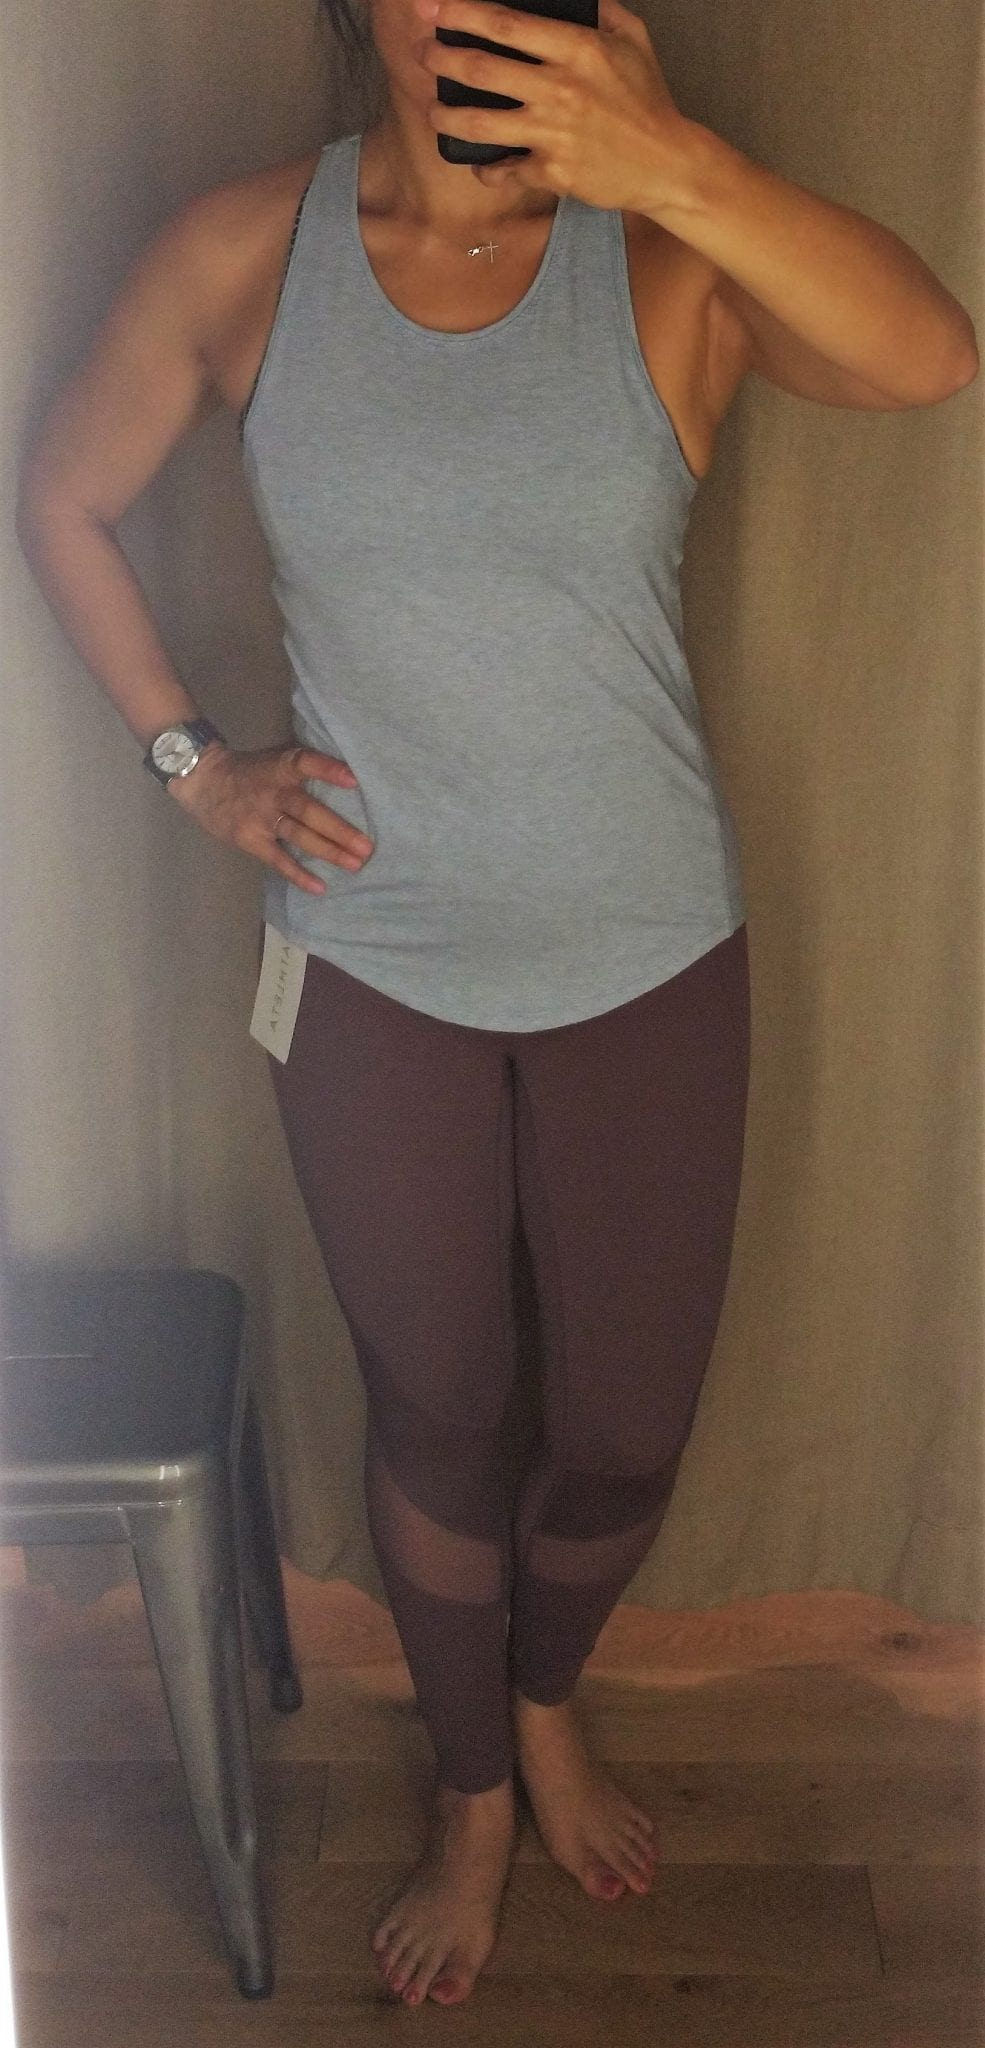 333fe3a2a1ca2 Guest Fit Review: Athleta Stealth Trucool 7/8 Tight, Yogini Tank ...